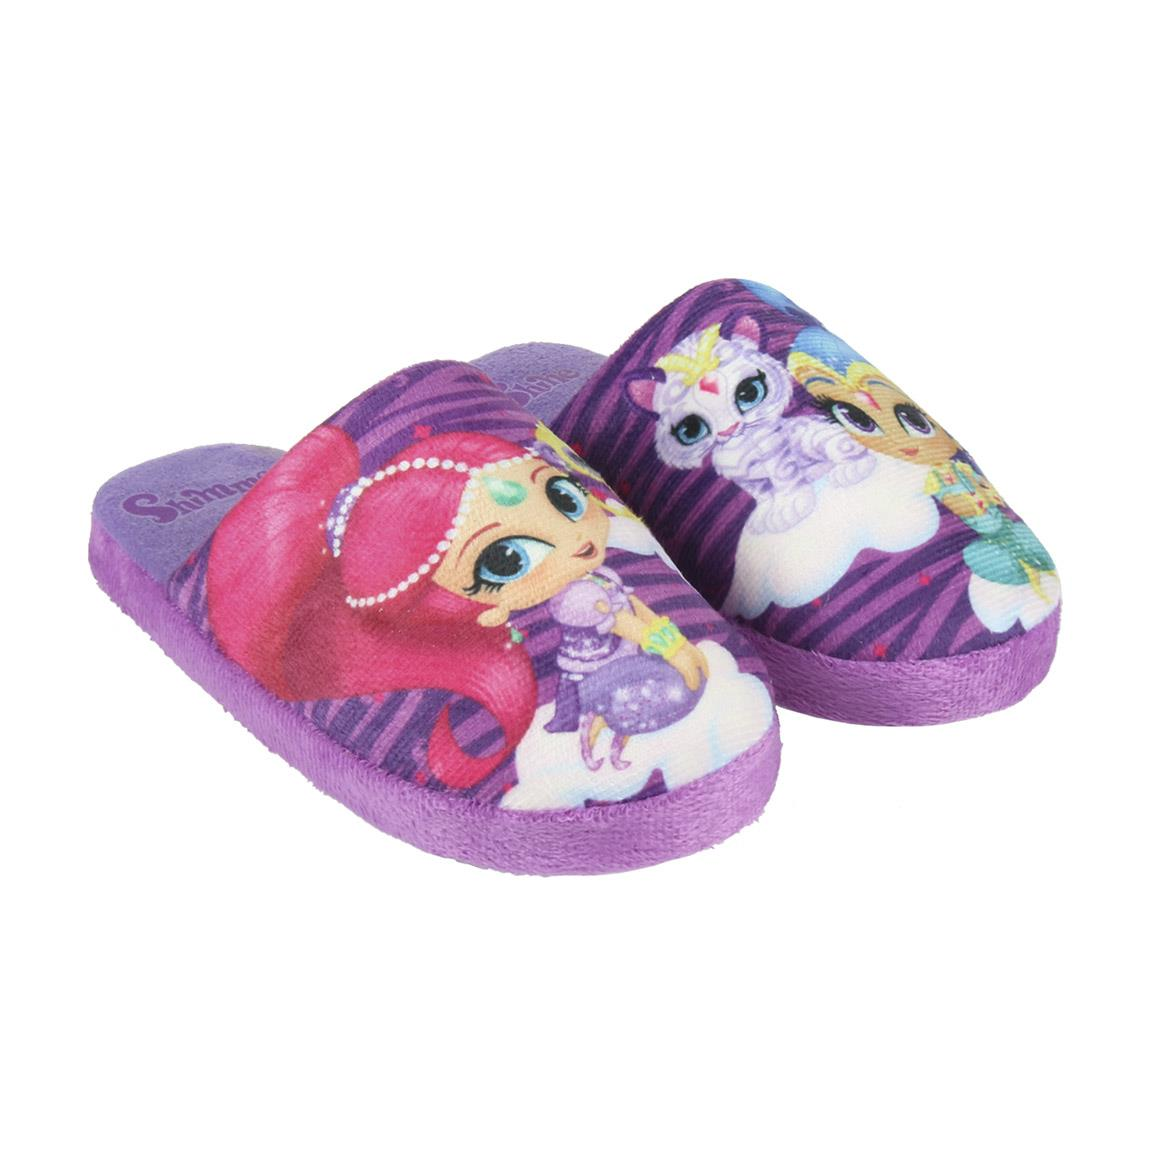 11034e5b7a03 Manufacturer and wholesaler of HOUSE SLIPPERS OPEN SHIMMER AND SHINE